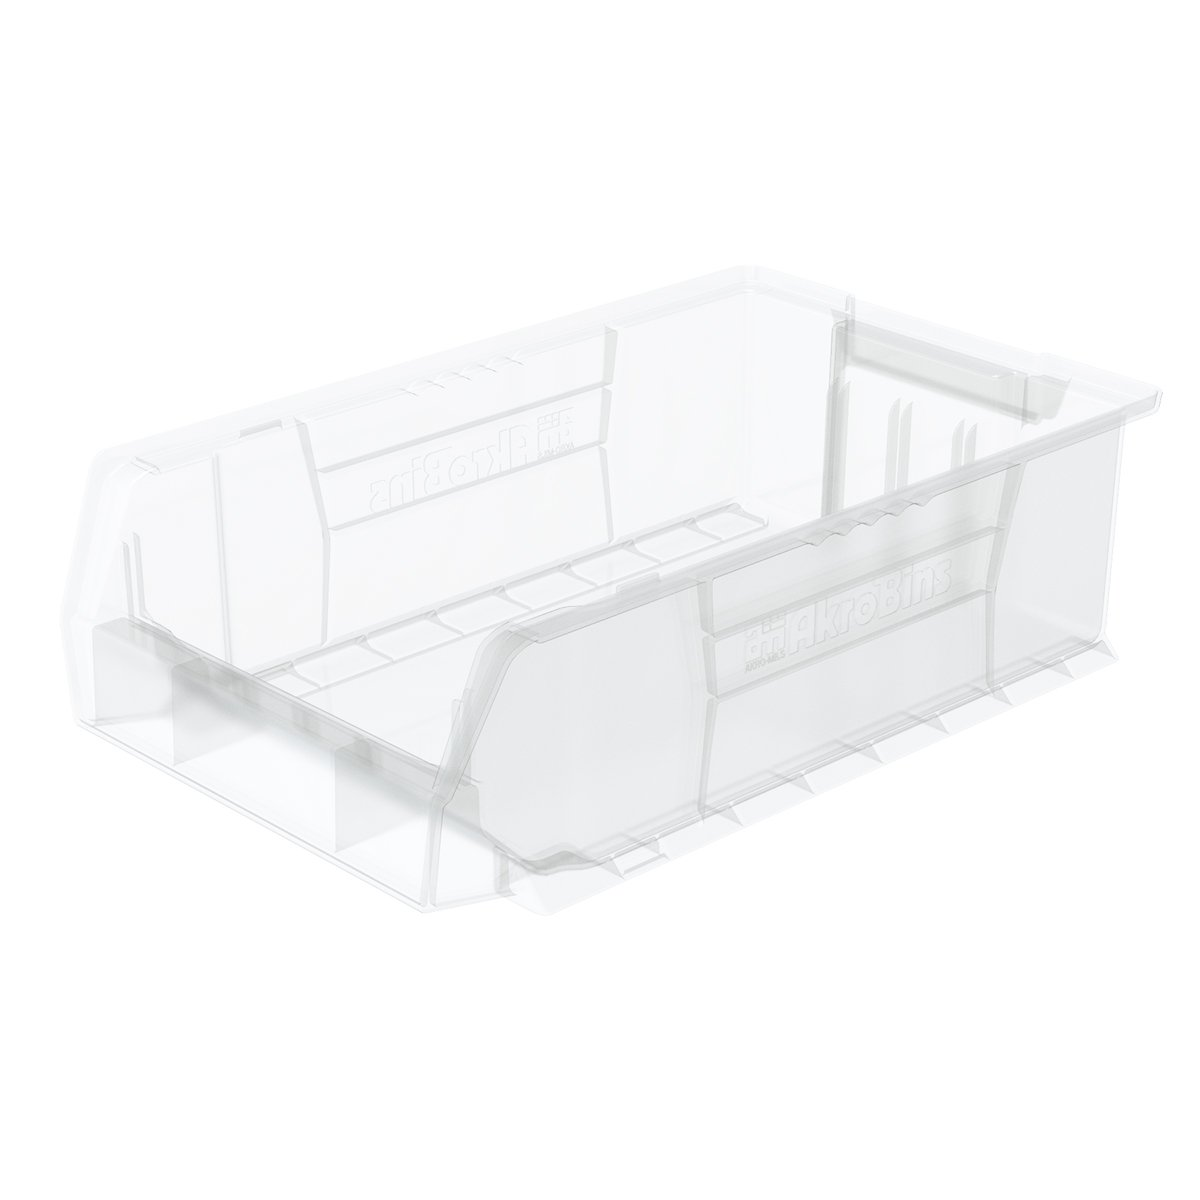 Akro-Mils 30280 20-Inch D by 12-Inch W by 6-Inch H Clear Super Size Plastic Stacking Storage AkroBin, 4-Pack by Akro-Mils